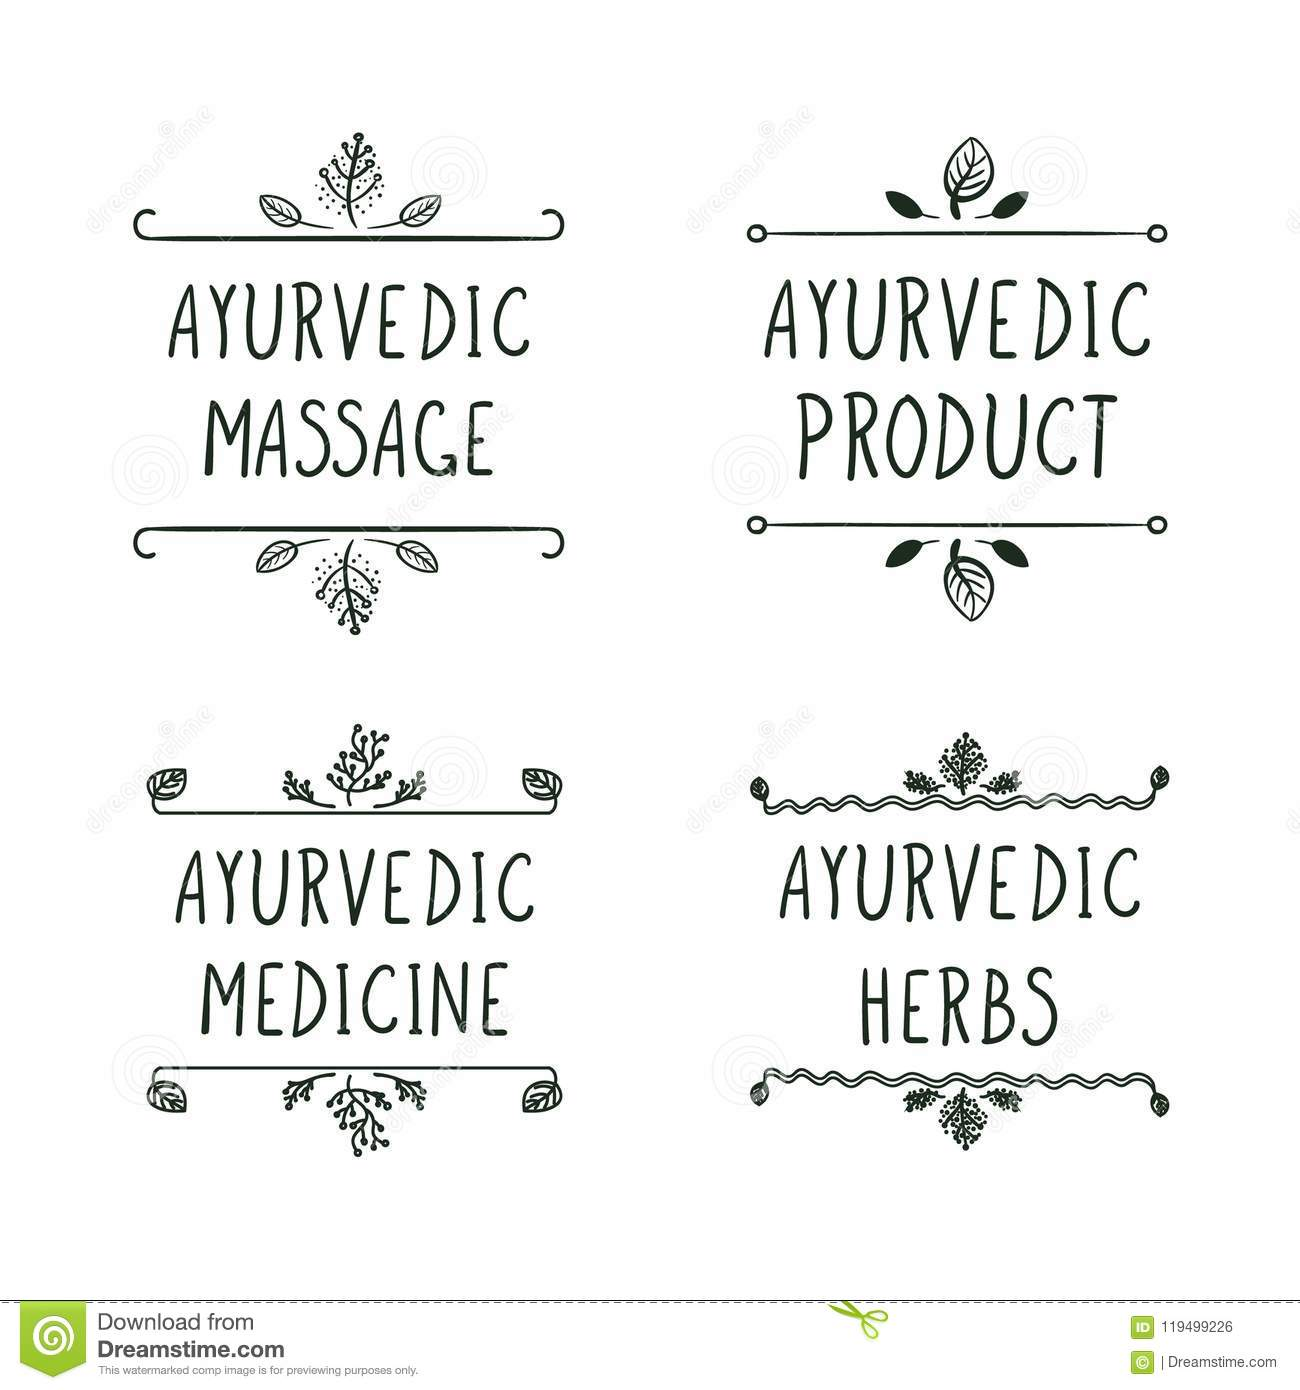 Ayurveda Vector Elements And Doshas With Text Isolated On